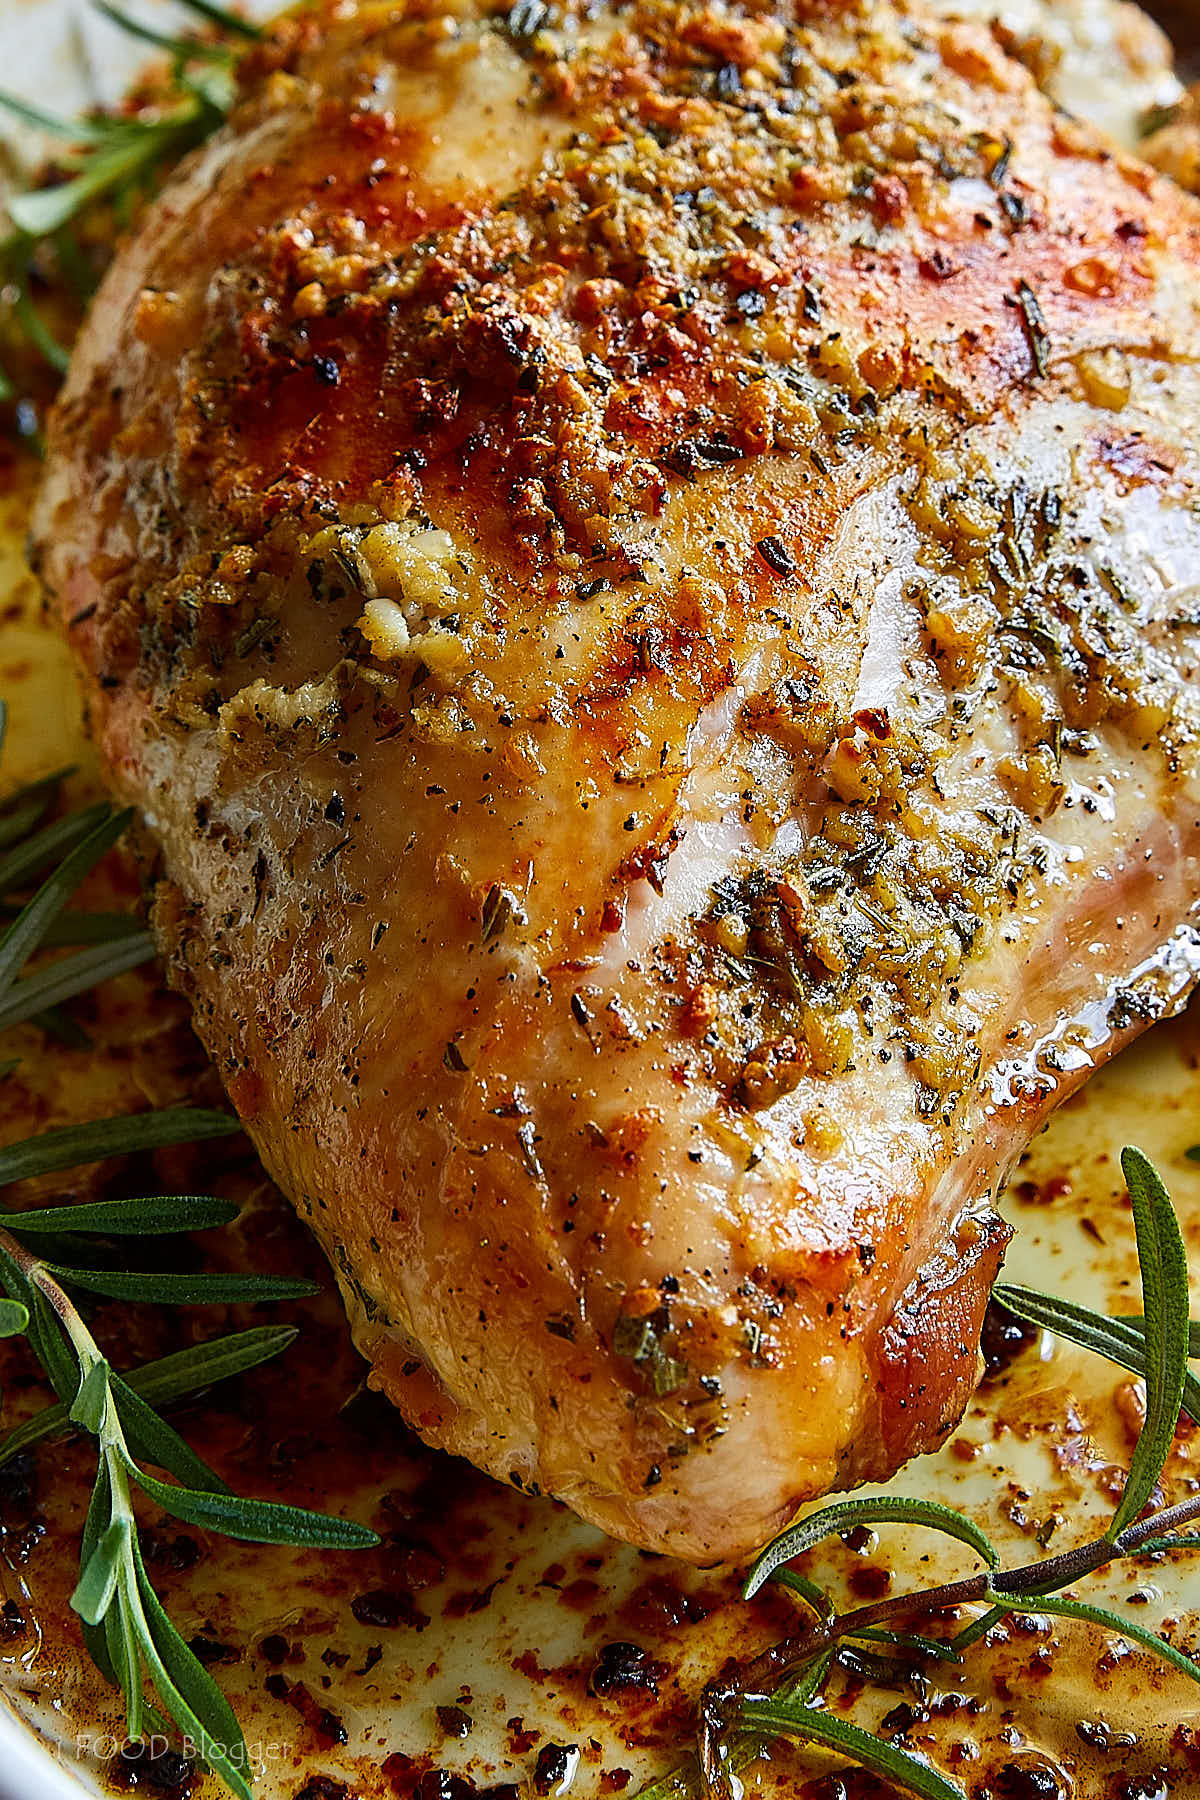 This roasted turkey breast, infused with garlic and herb butter is a great alternative to cooking a whole turkey. It cooks much faster and is very tender and incredibly juicy. Perfect for Thanksgiving or Christmas dinner. | ifoodblogger.com